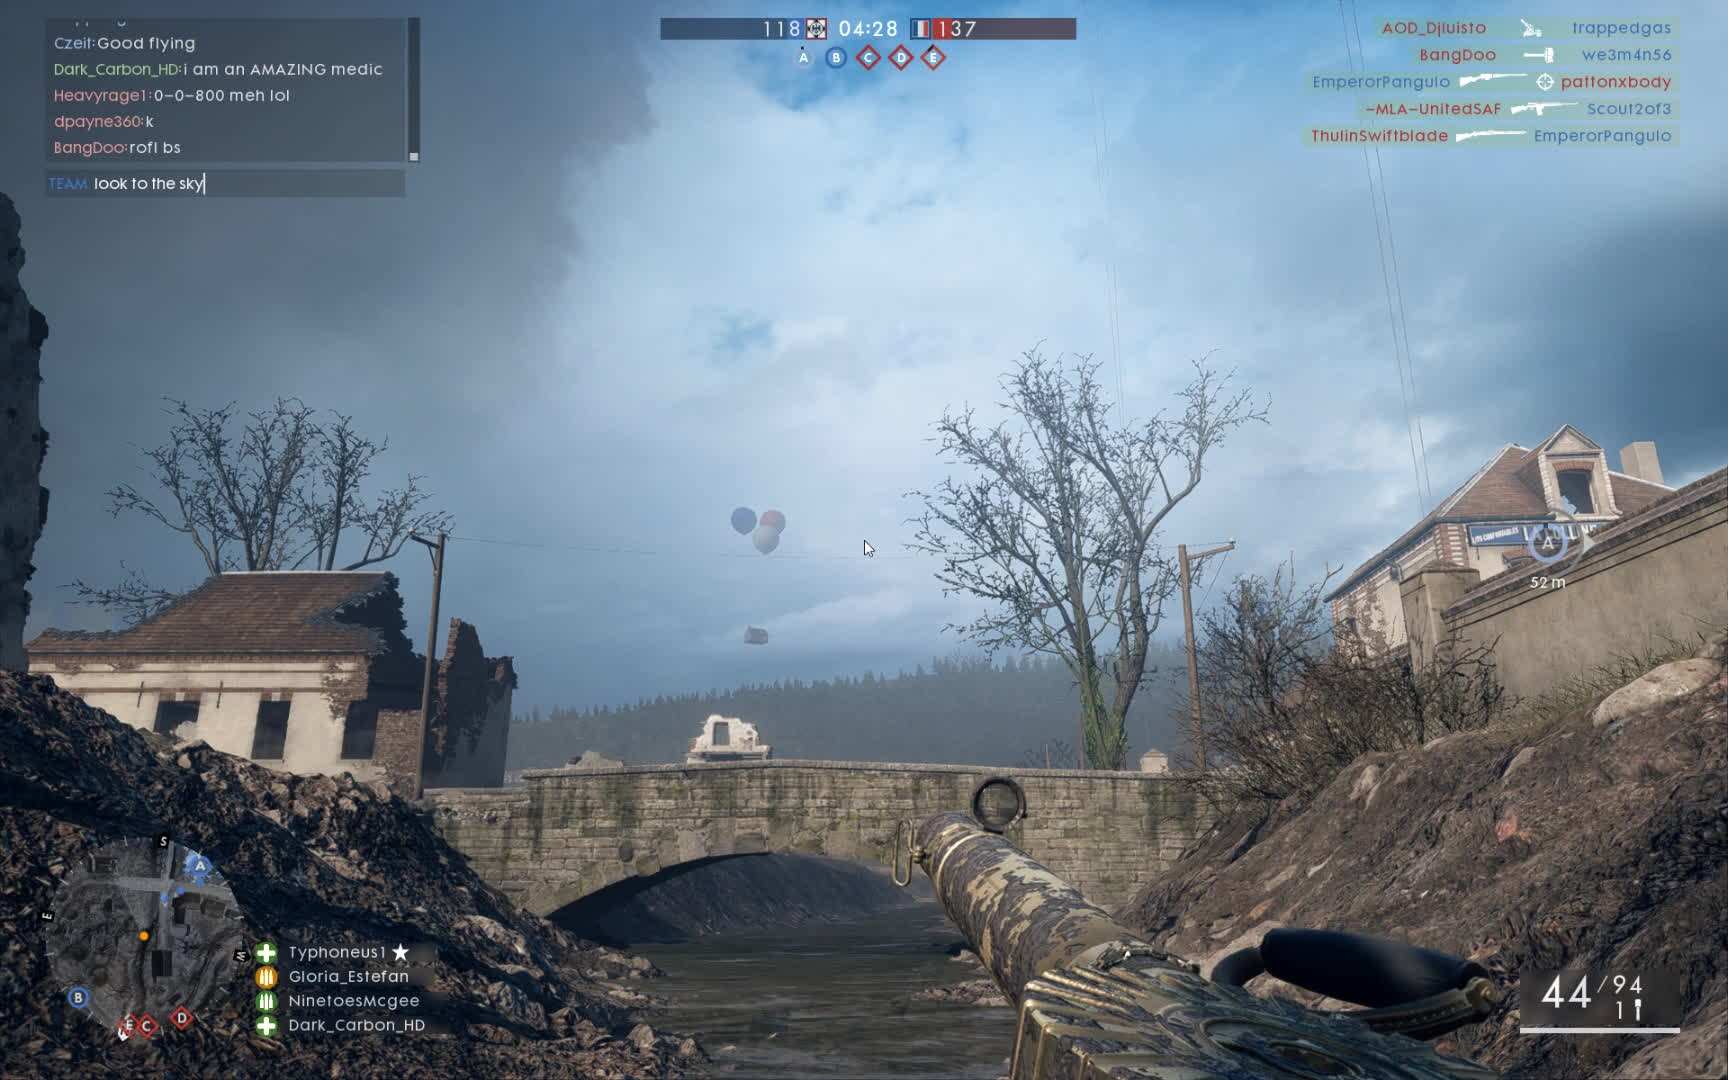 battlefield 1, easter egg, flying house, Up House Easter Egg in Battlefield one GIFs